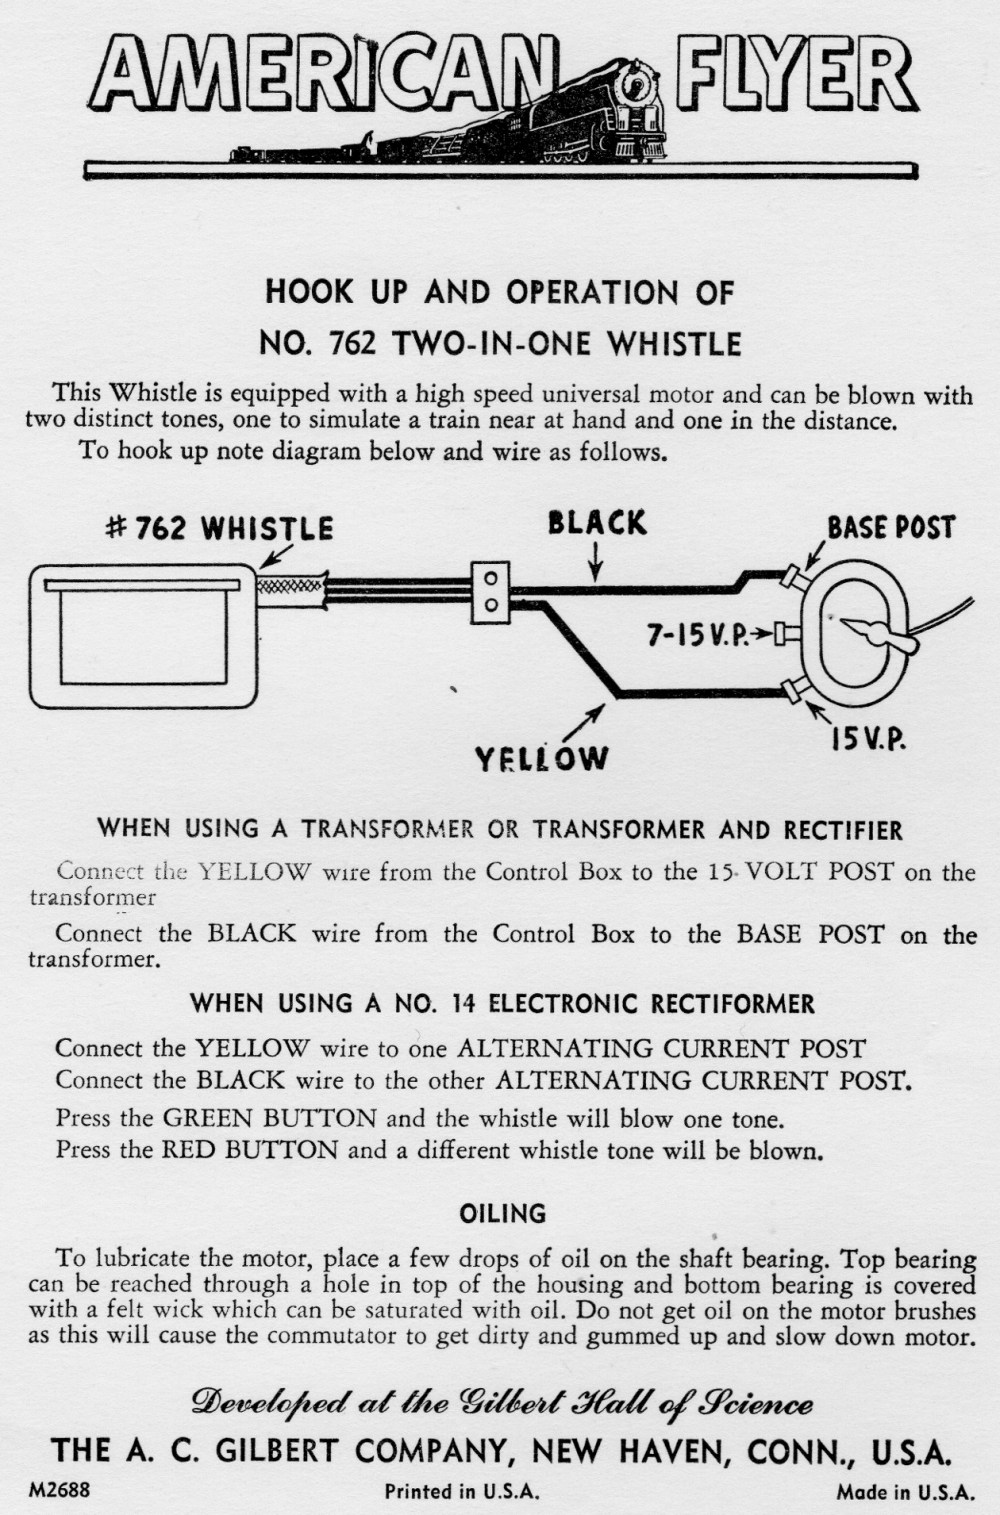 medium resolution of  wiring instructions hook up and operation of no 762 two in one whistle